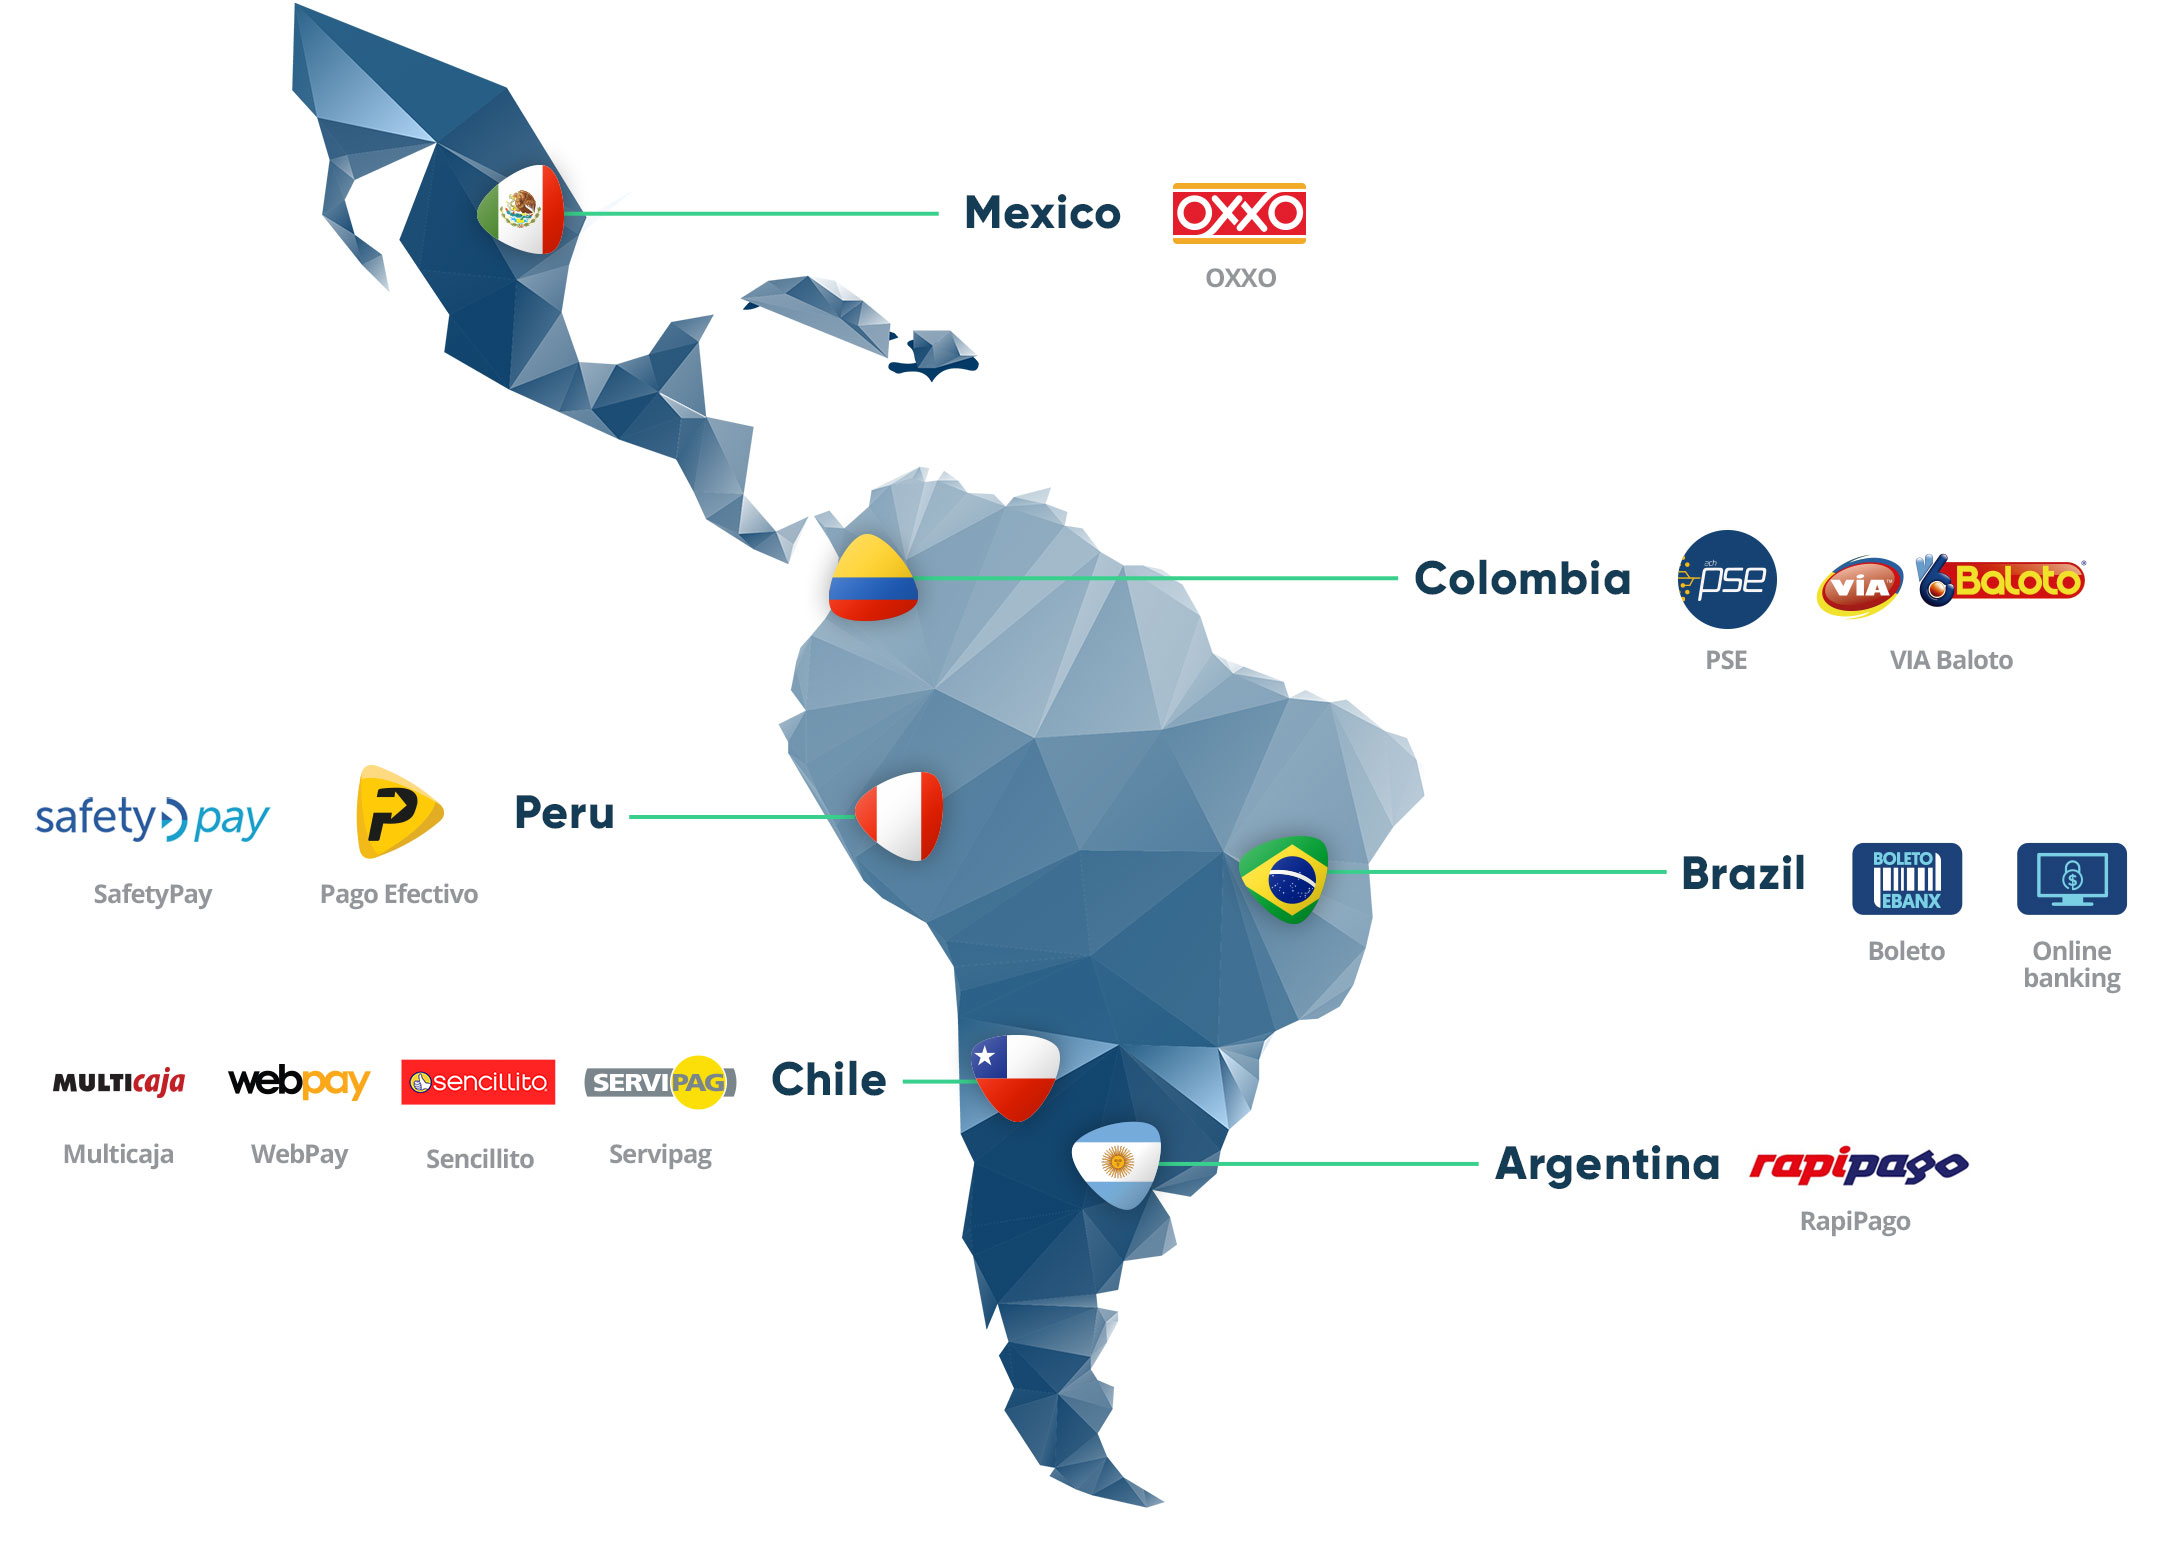 Map of Local Payment Methods in Latin America